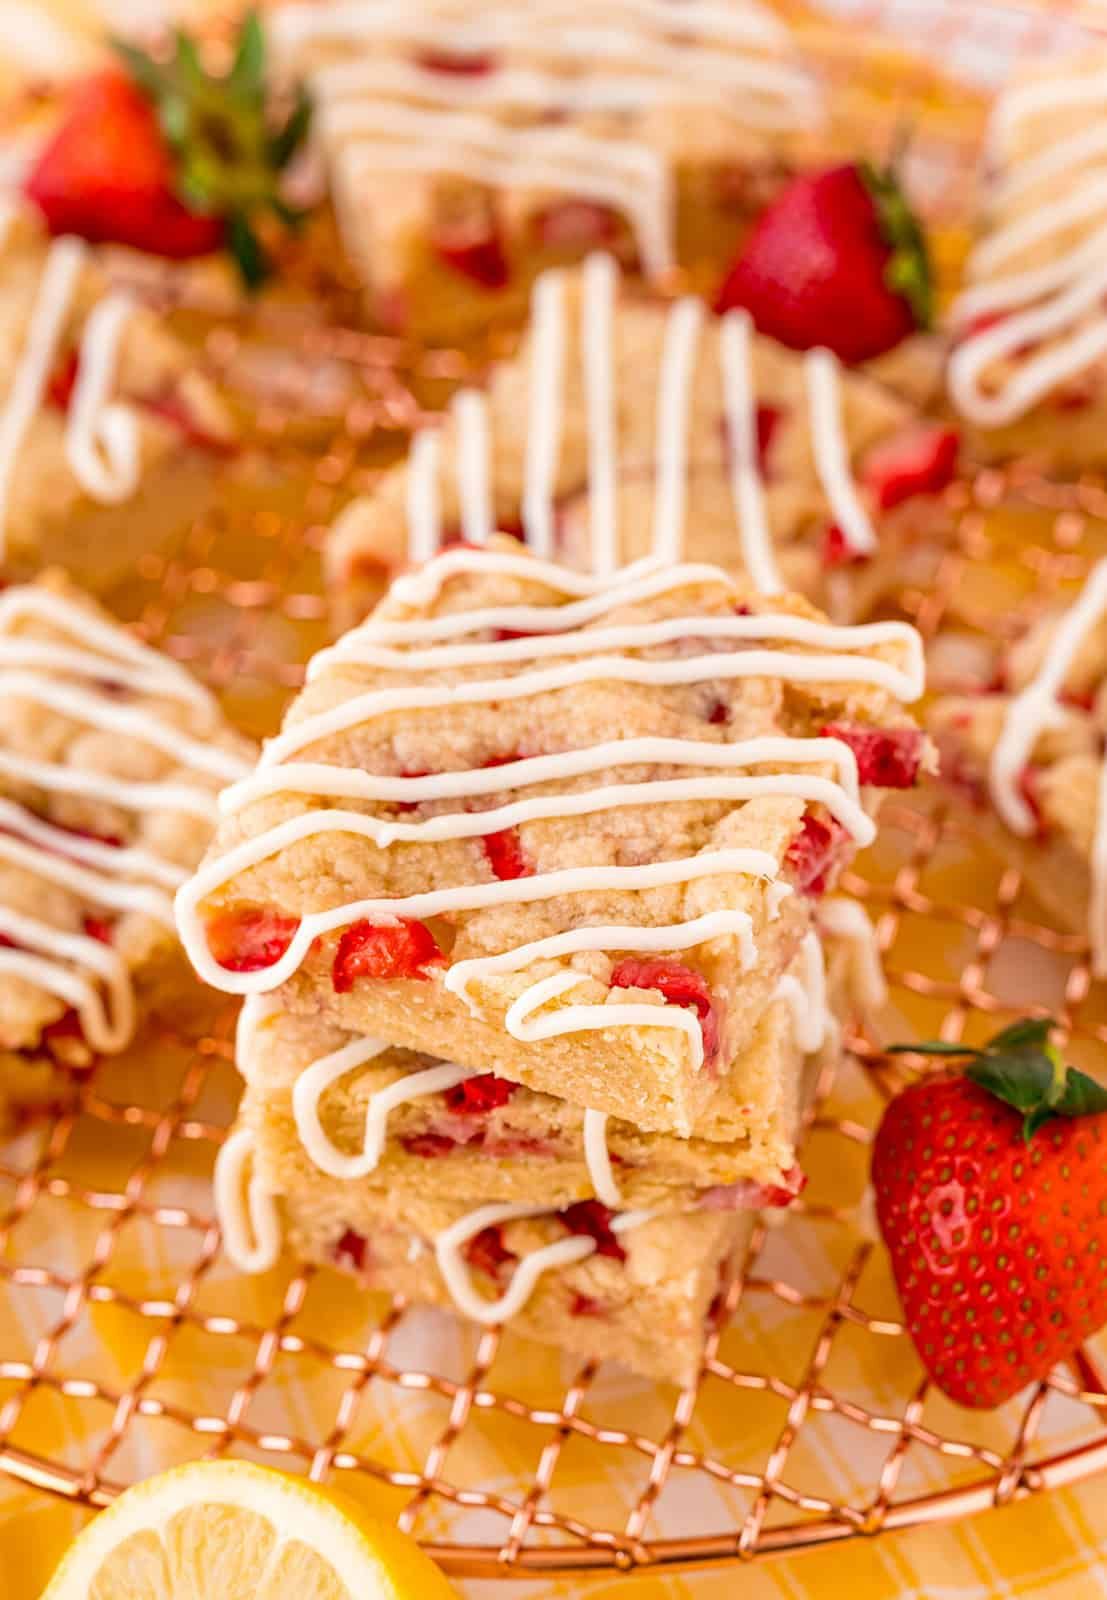 Stacked Strawberry Shortcake Bars on wire rack